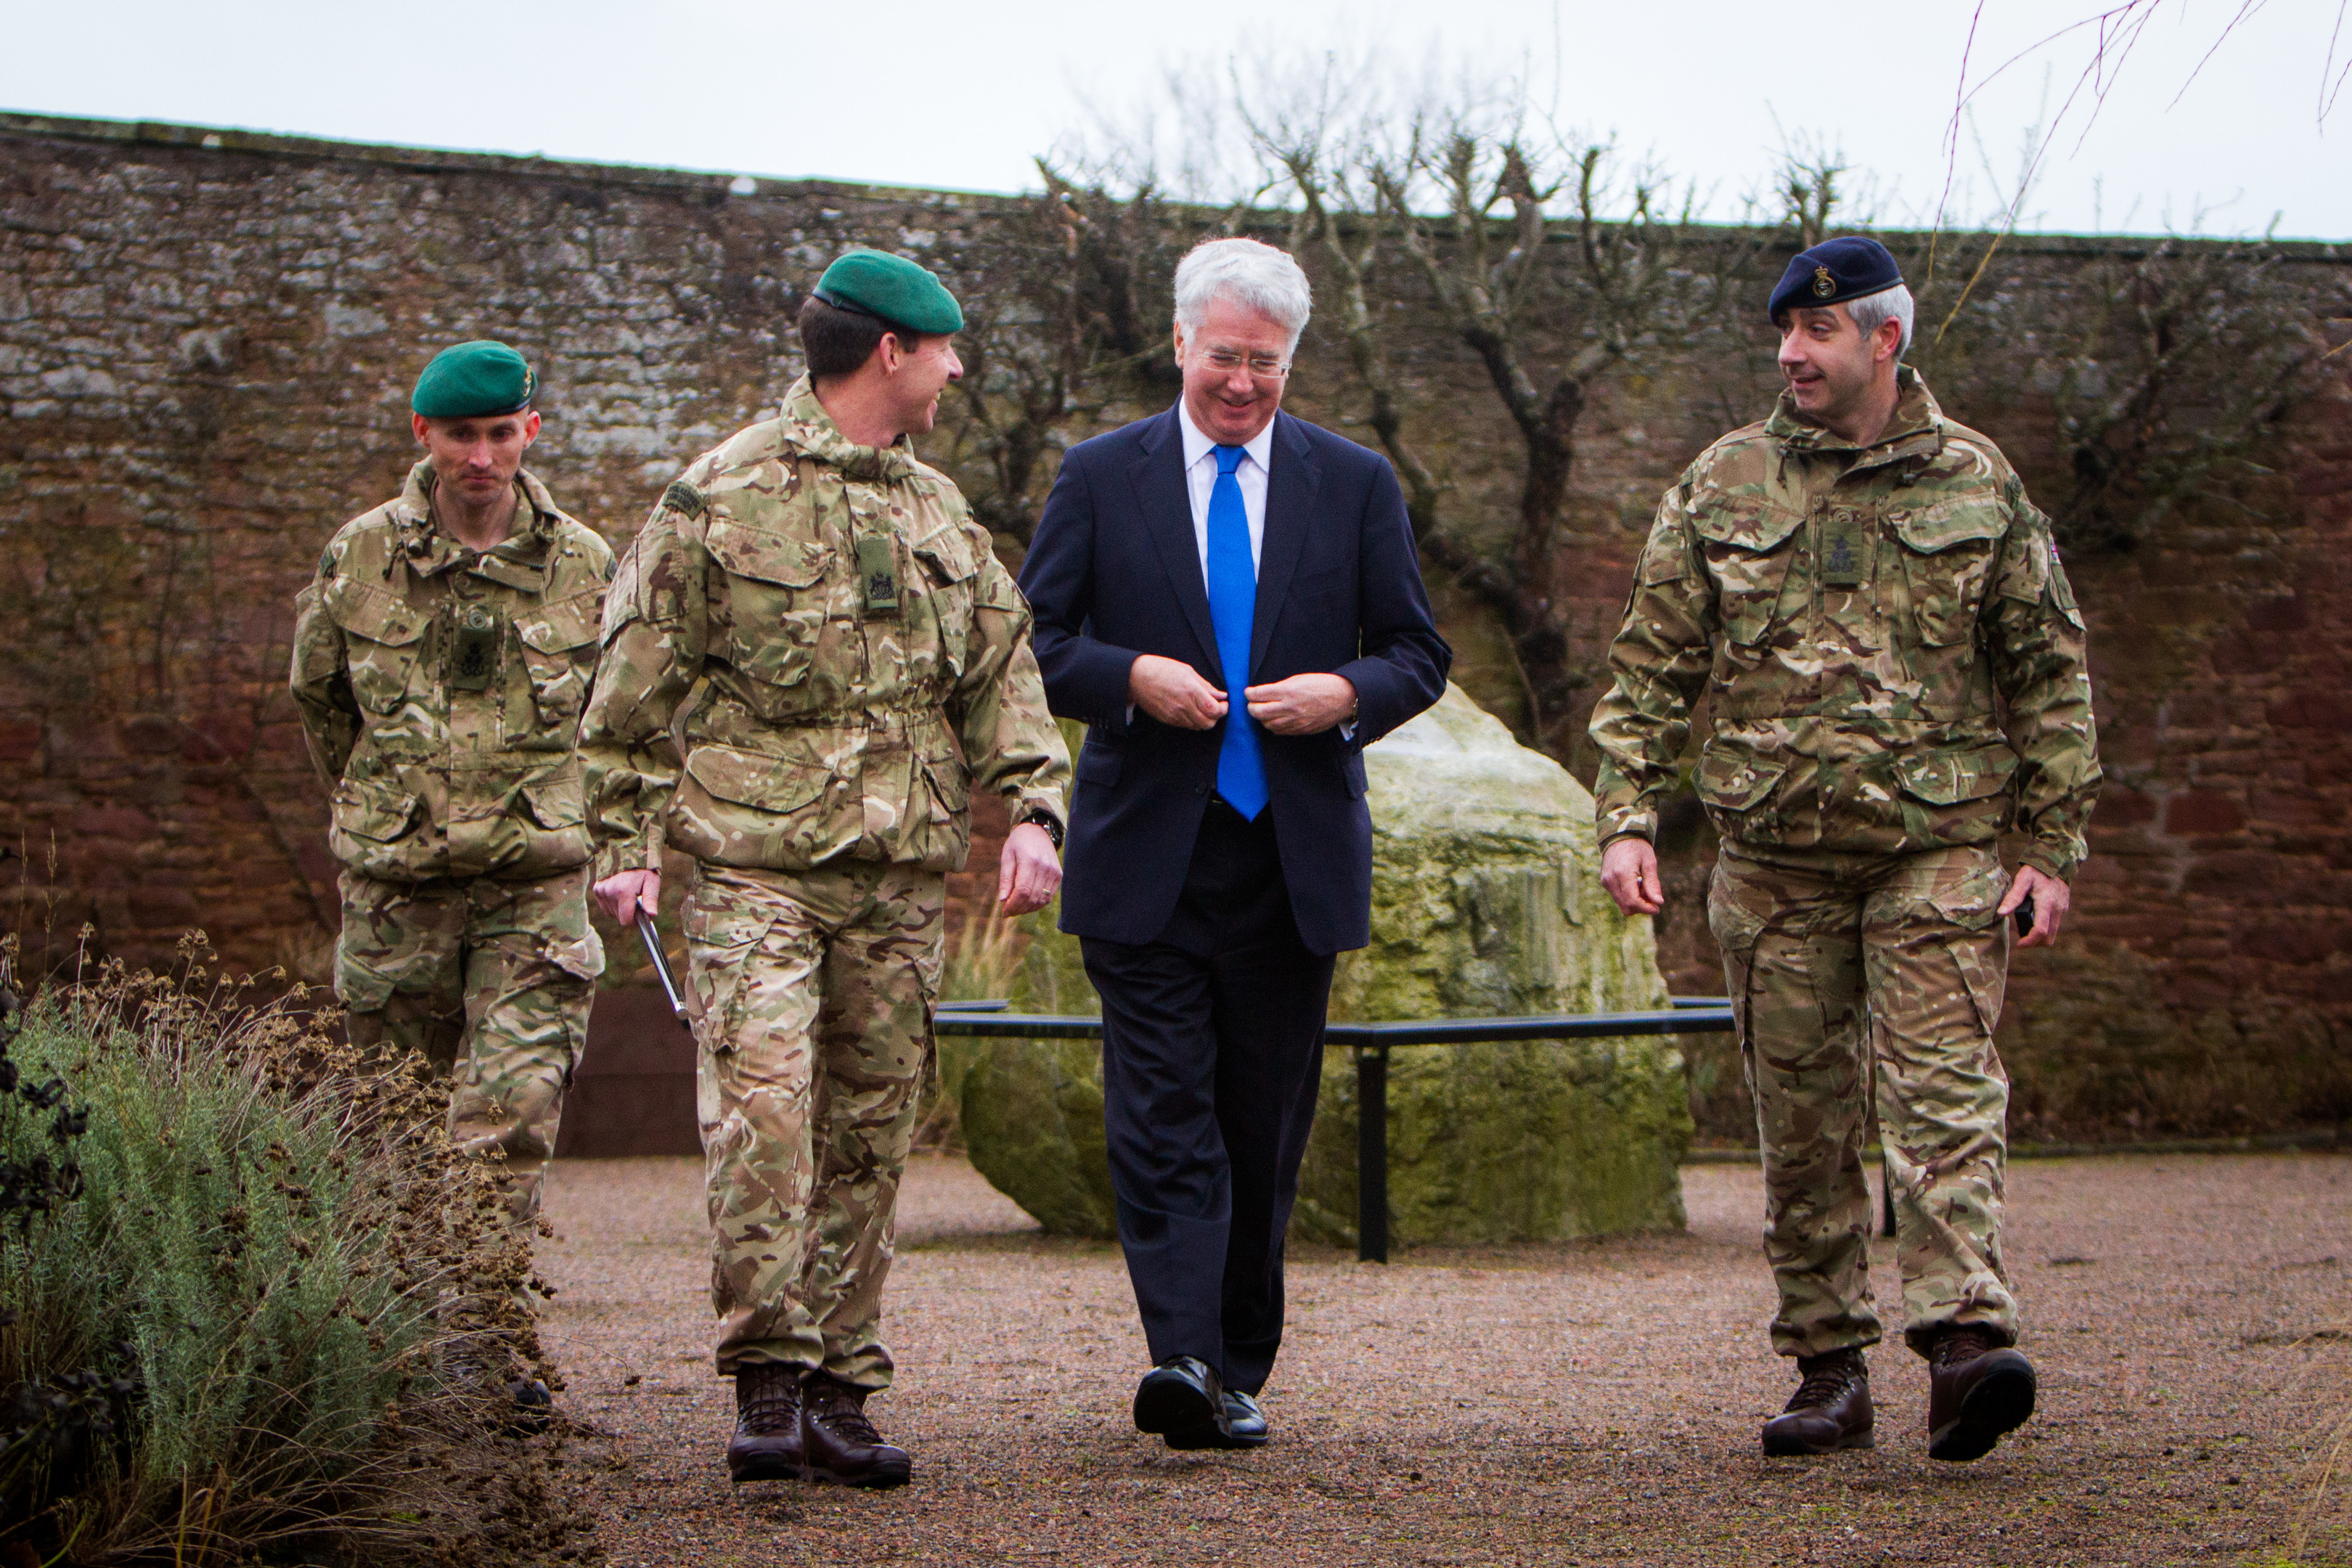 Secretary of State for Defence Sir Michael Fallon alongside PO Jamie Jackson (left), Regimental Lt Sgt Maj WOI Wilson and PO Ian Dixon (right) at RM Condor, Arbroath.